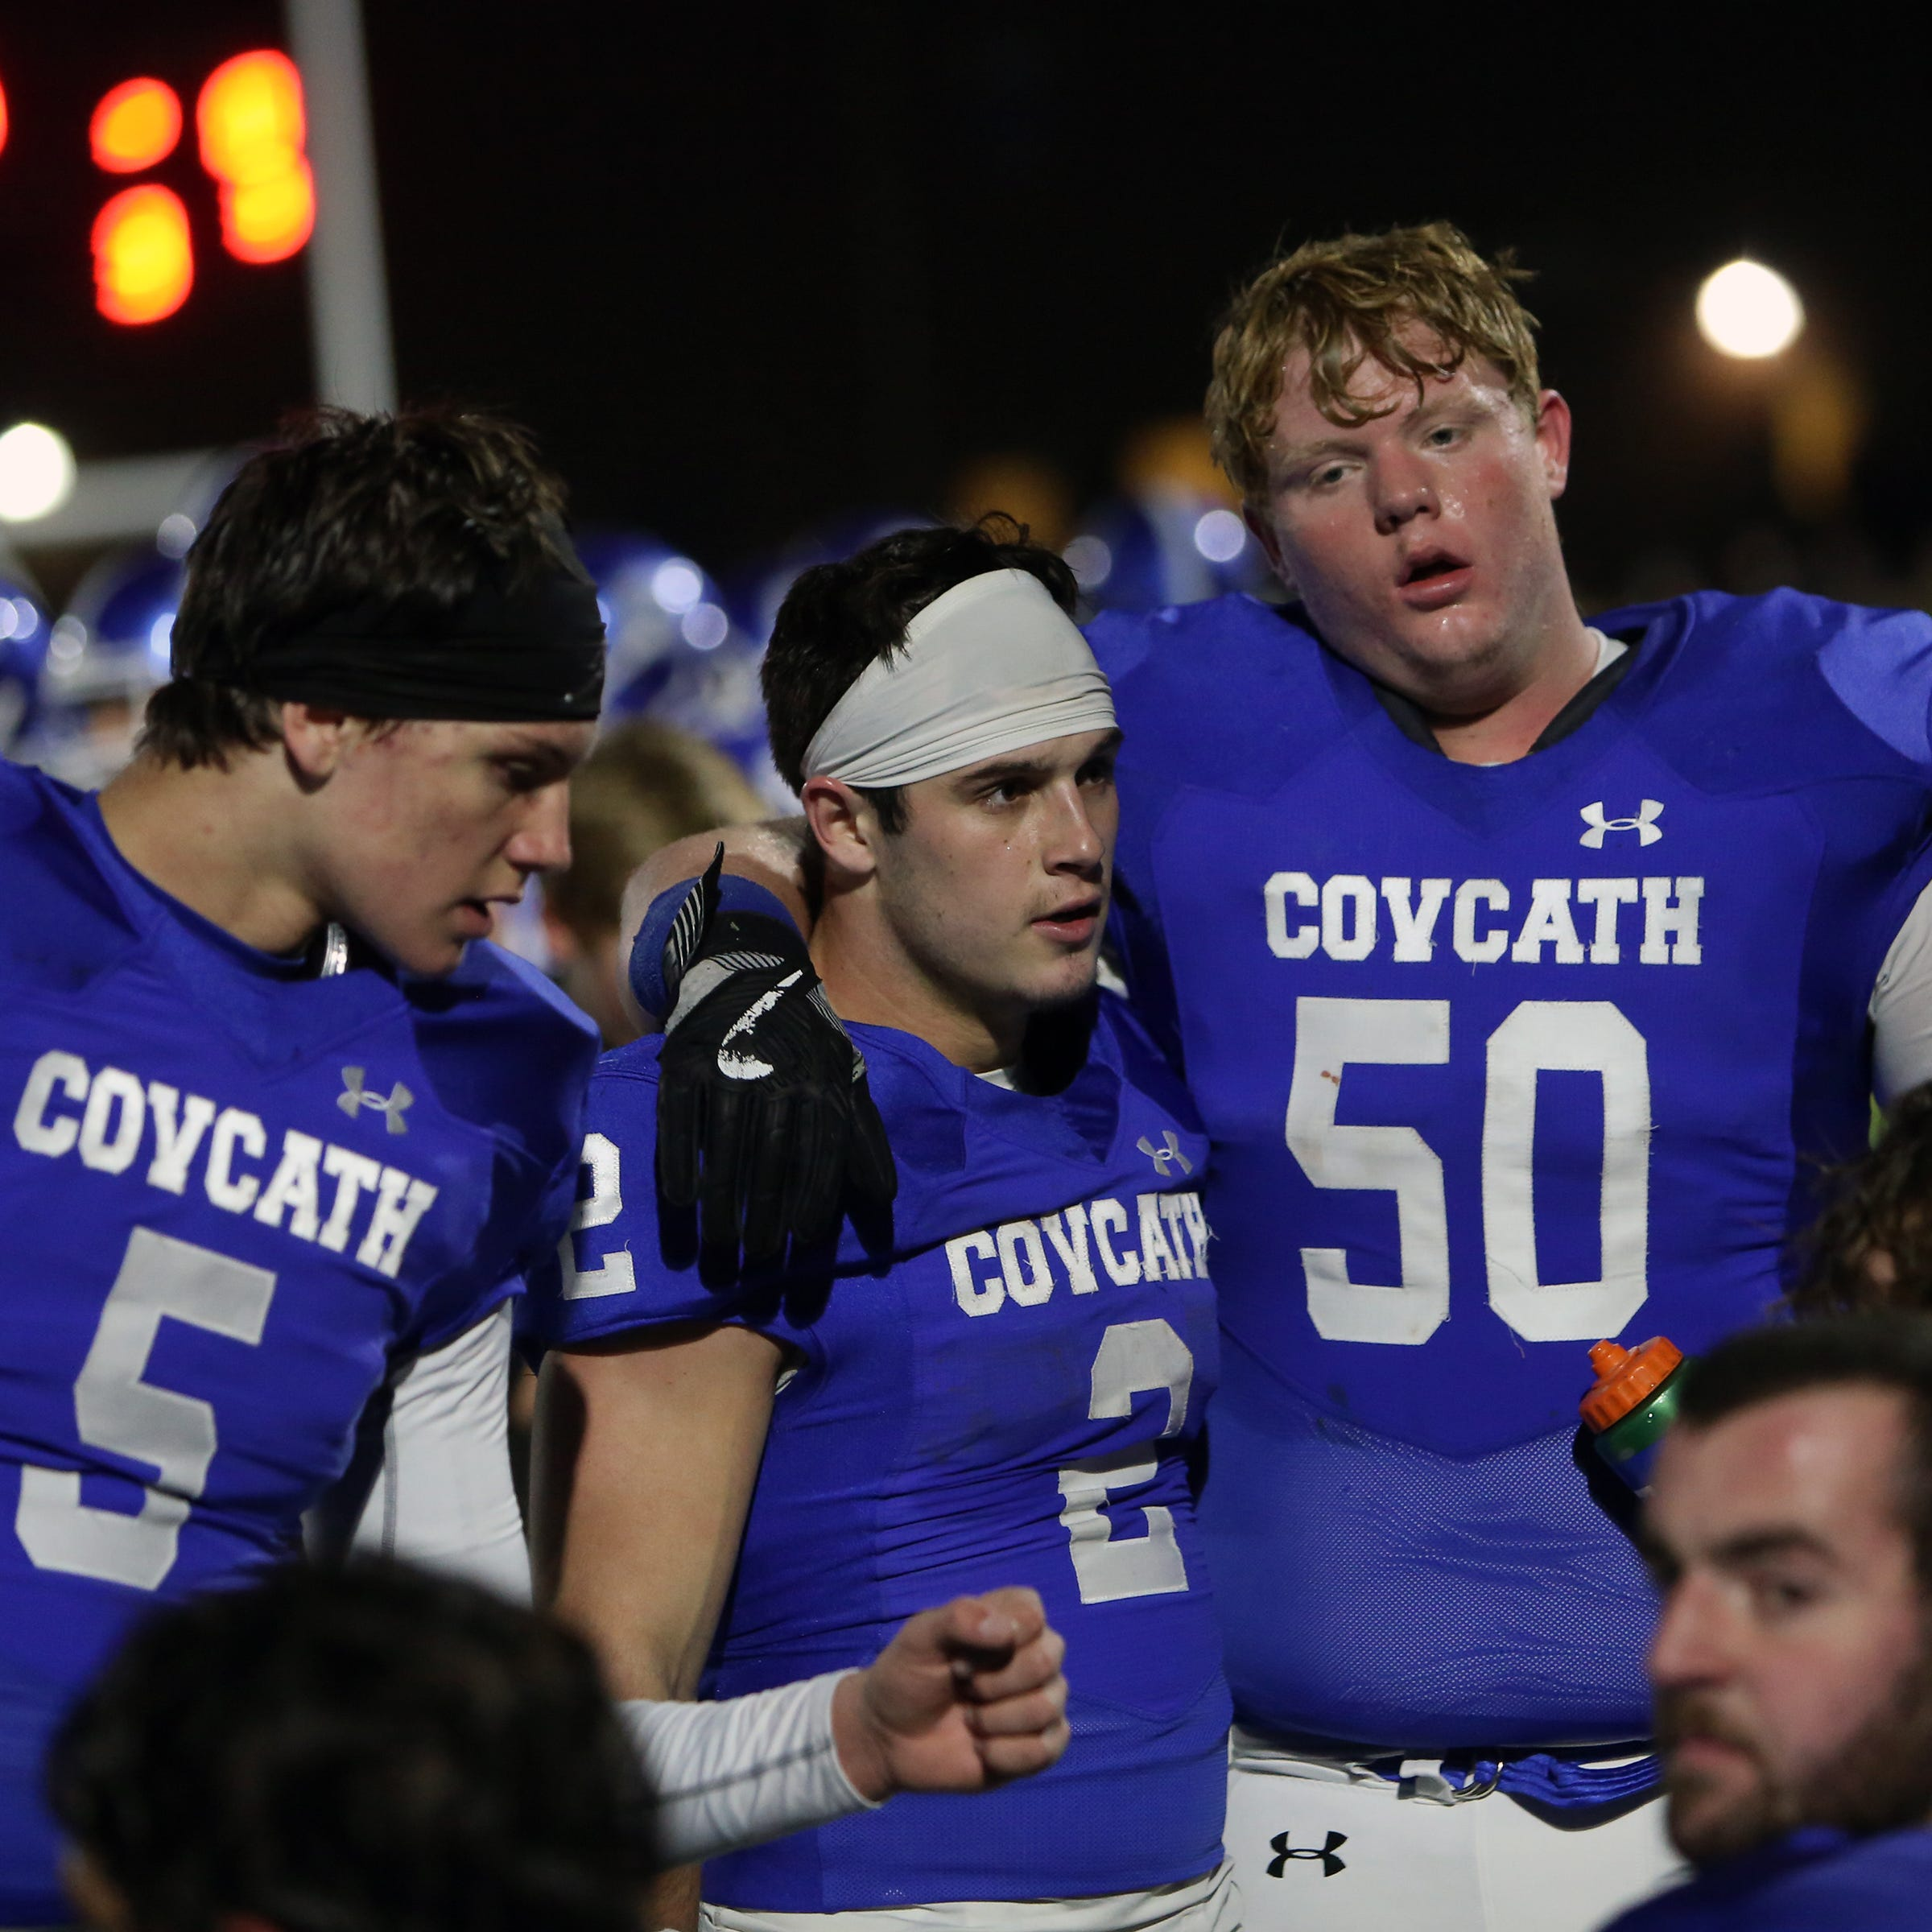 High school football postseason: McGinness, Mayer shut down Highlands in 36-0 CovCath win